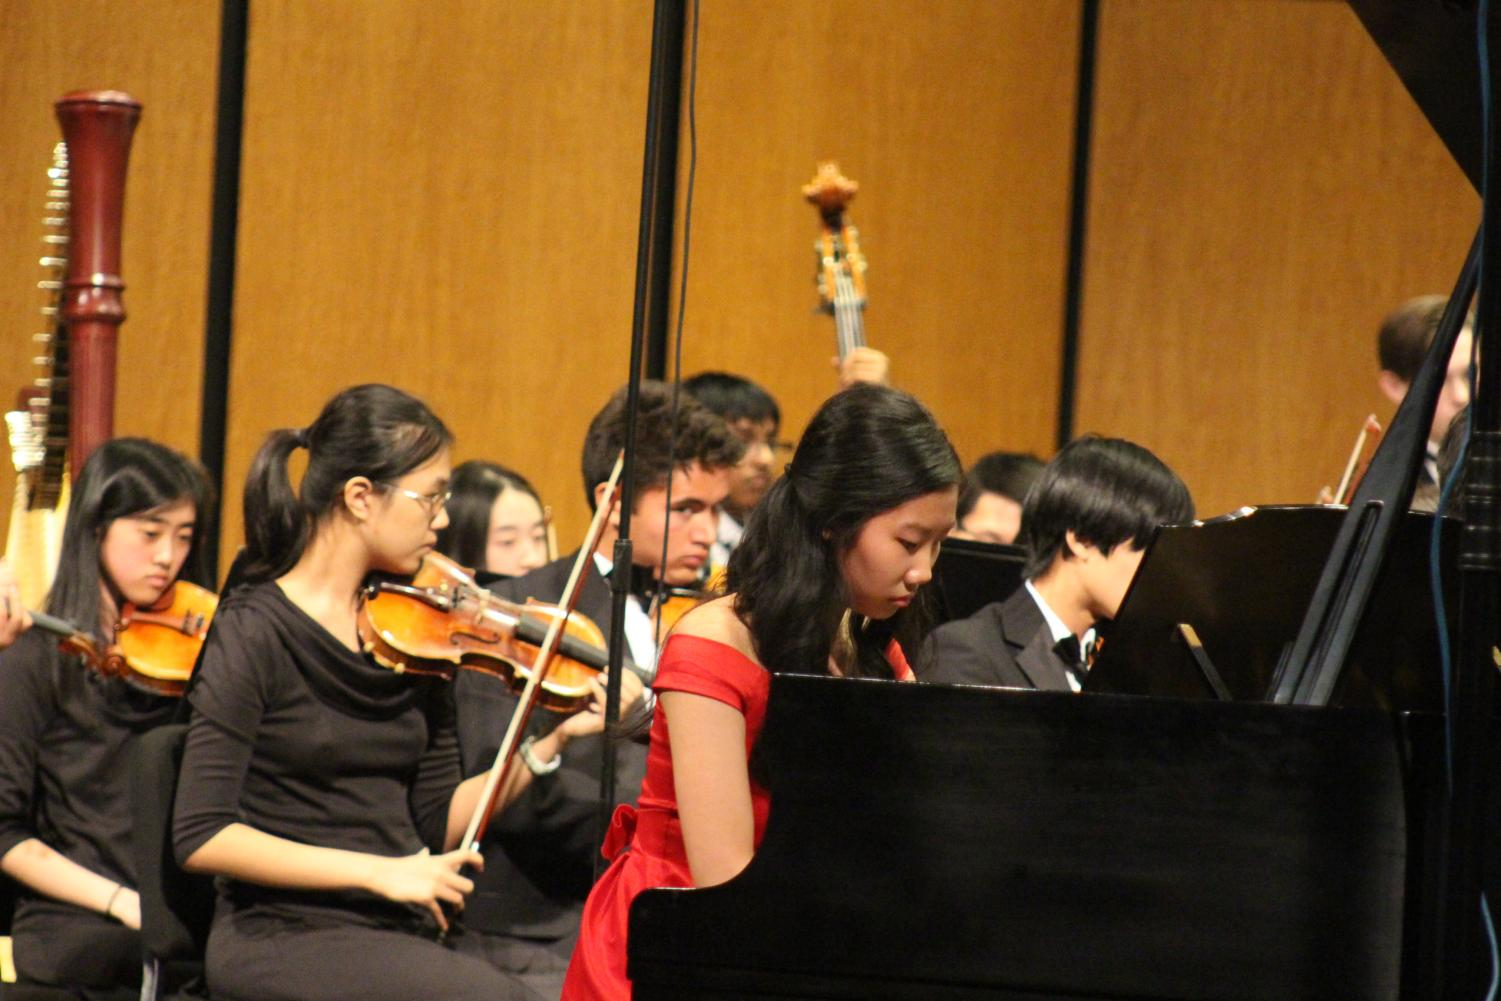 Stephanie Li '19 performs a piano concerto while the rest of Patriot Orchestra plays along. Future soloists will include Adele Lee '19 and Reid Harmon '19.